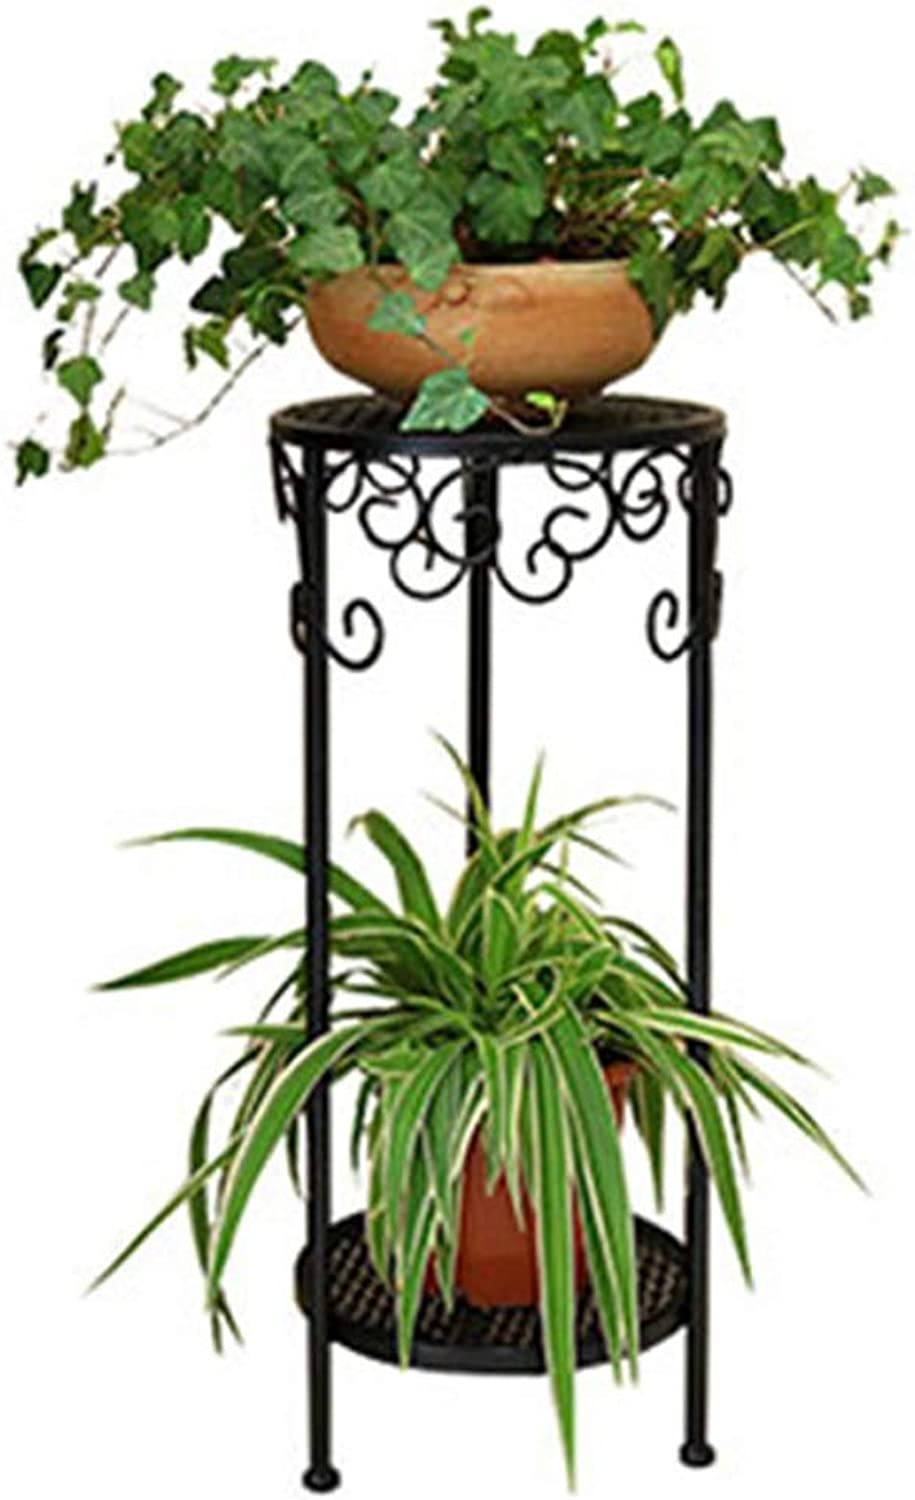 Qing MEI European-Style Floor-Standing Flower Stand Indoor Double-Layer Racks Balcony Wrought Iron Green Pot Rack (Size  30X90cm) A++